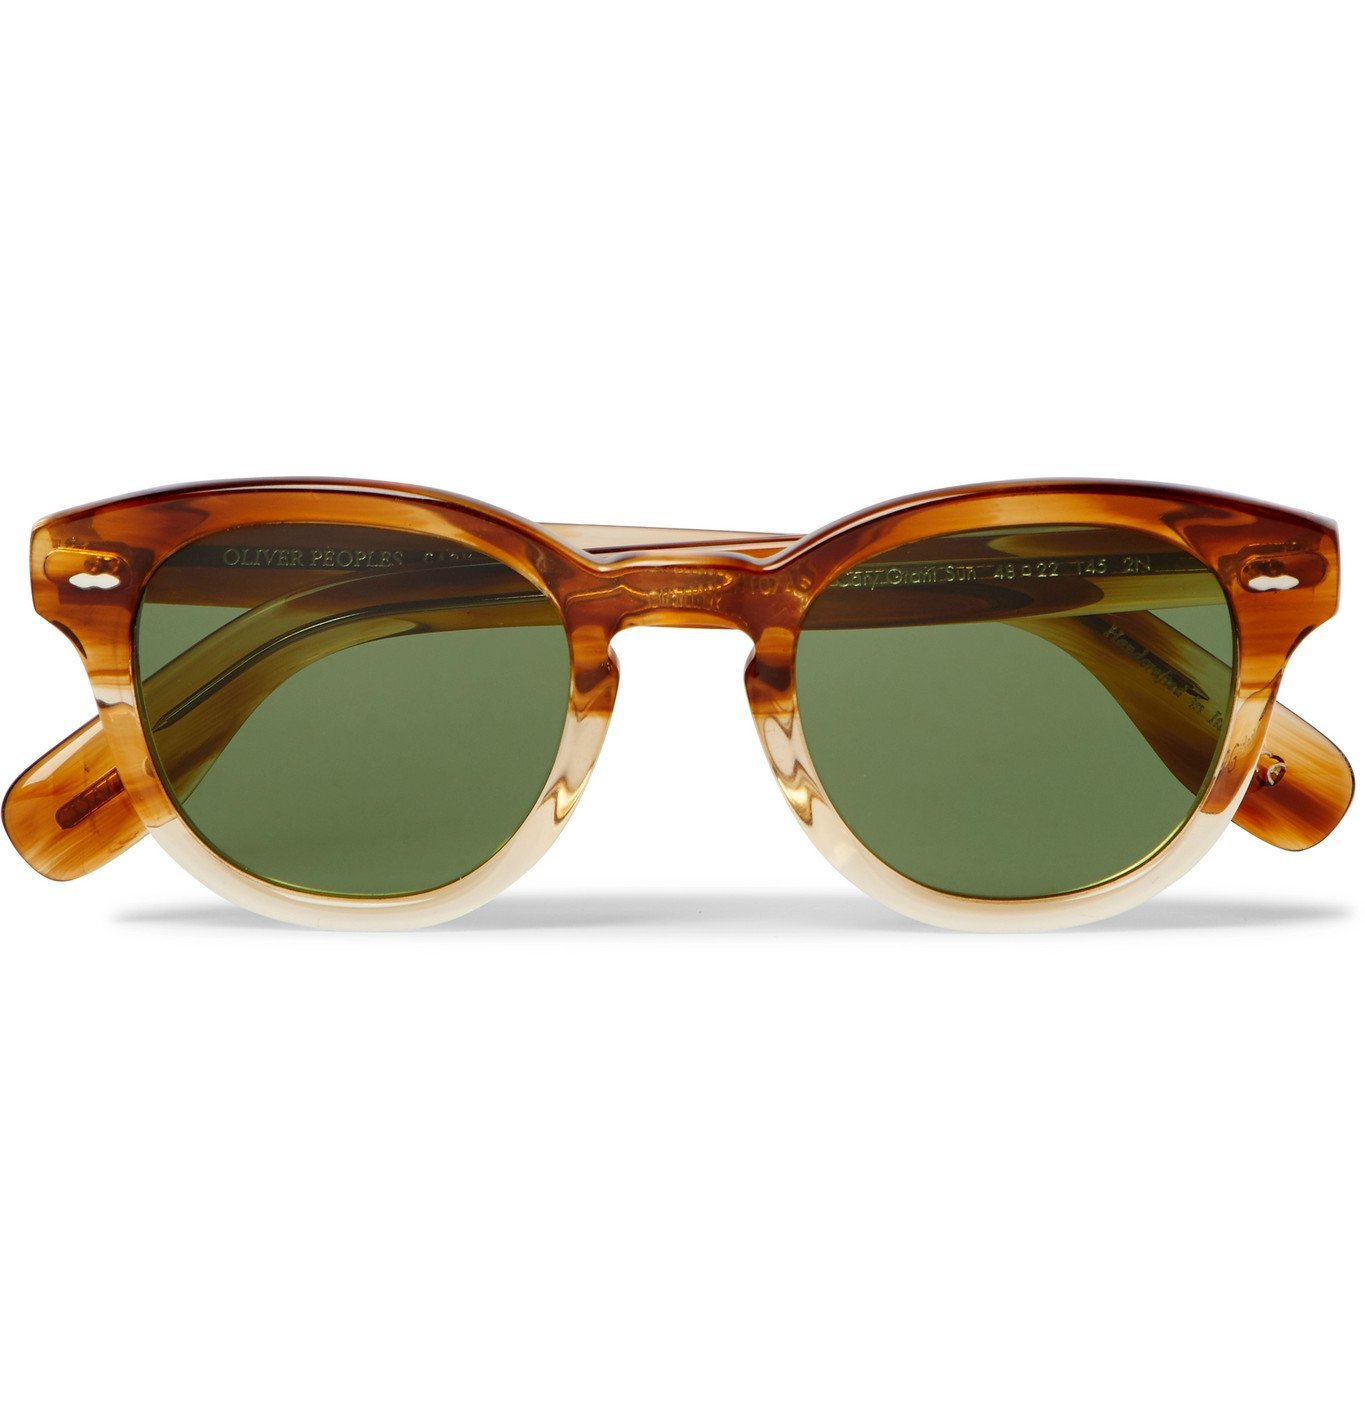 Photo: OLIVER PEOPLES - Cary Grant Sun Round-Frame Acetate Sunglasses - Brown